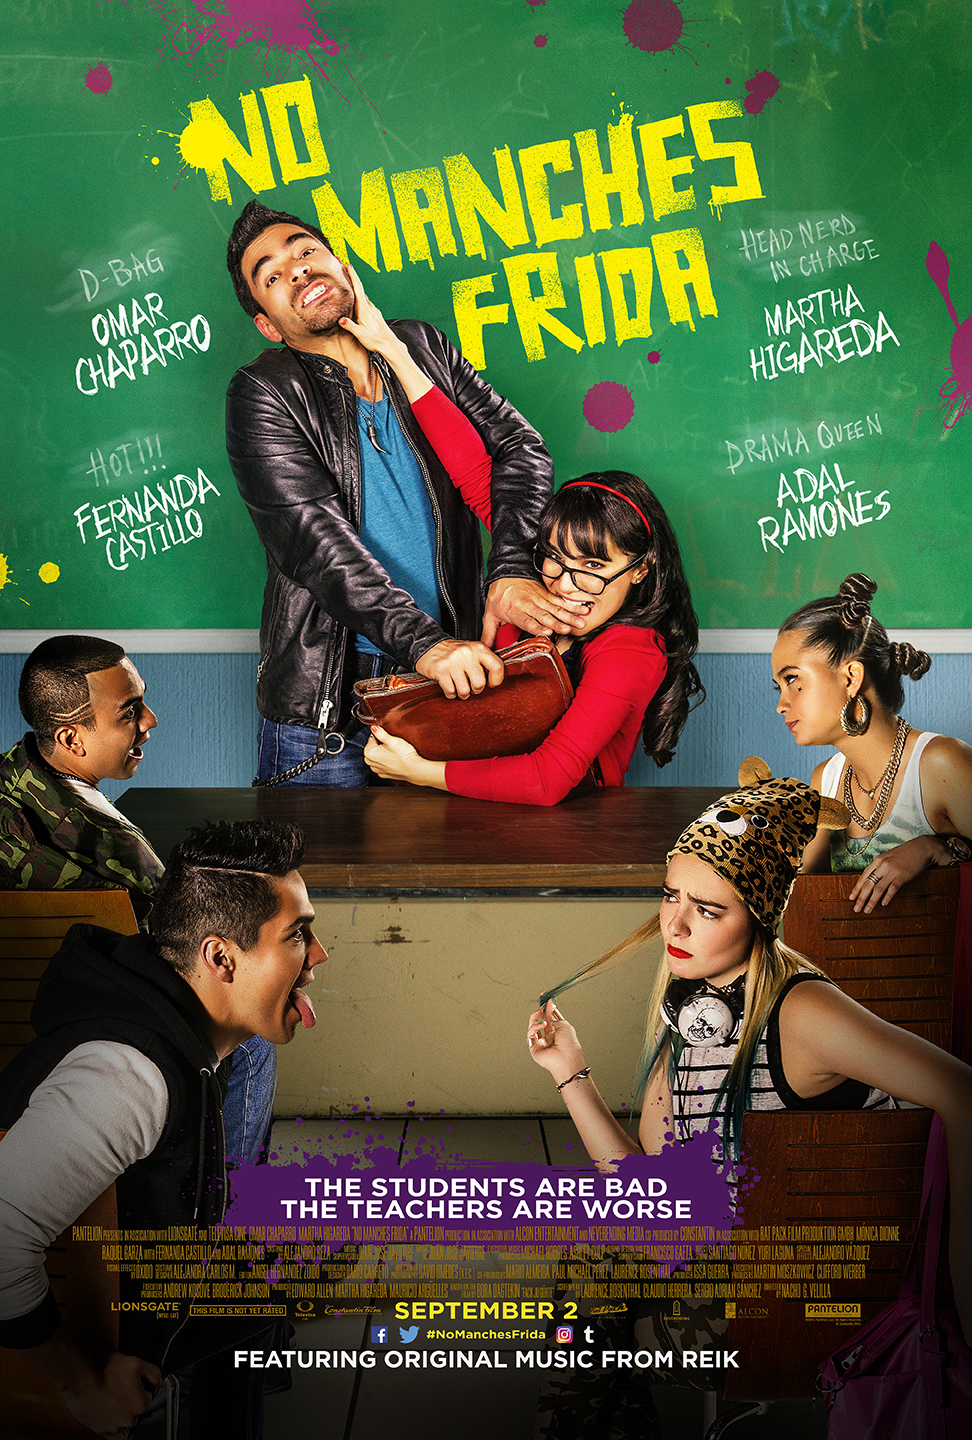 Pantelions New Spanish Language  edy No Maches Frida Debuts Poster And Trailer 287864 furthermore Your Oscar Party Essentials Ballot additionally Download Our Printable Oscars Ballot as well  together with Oscars 2018 Predictions Best Picture. on oscar predictions sheet 2017